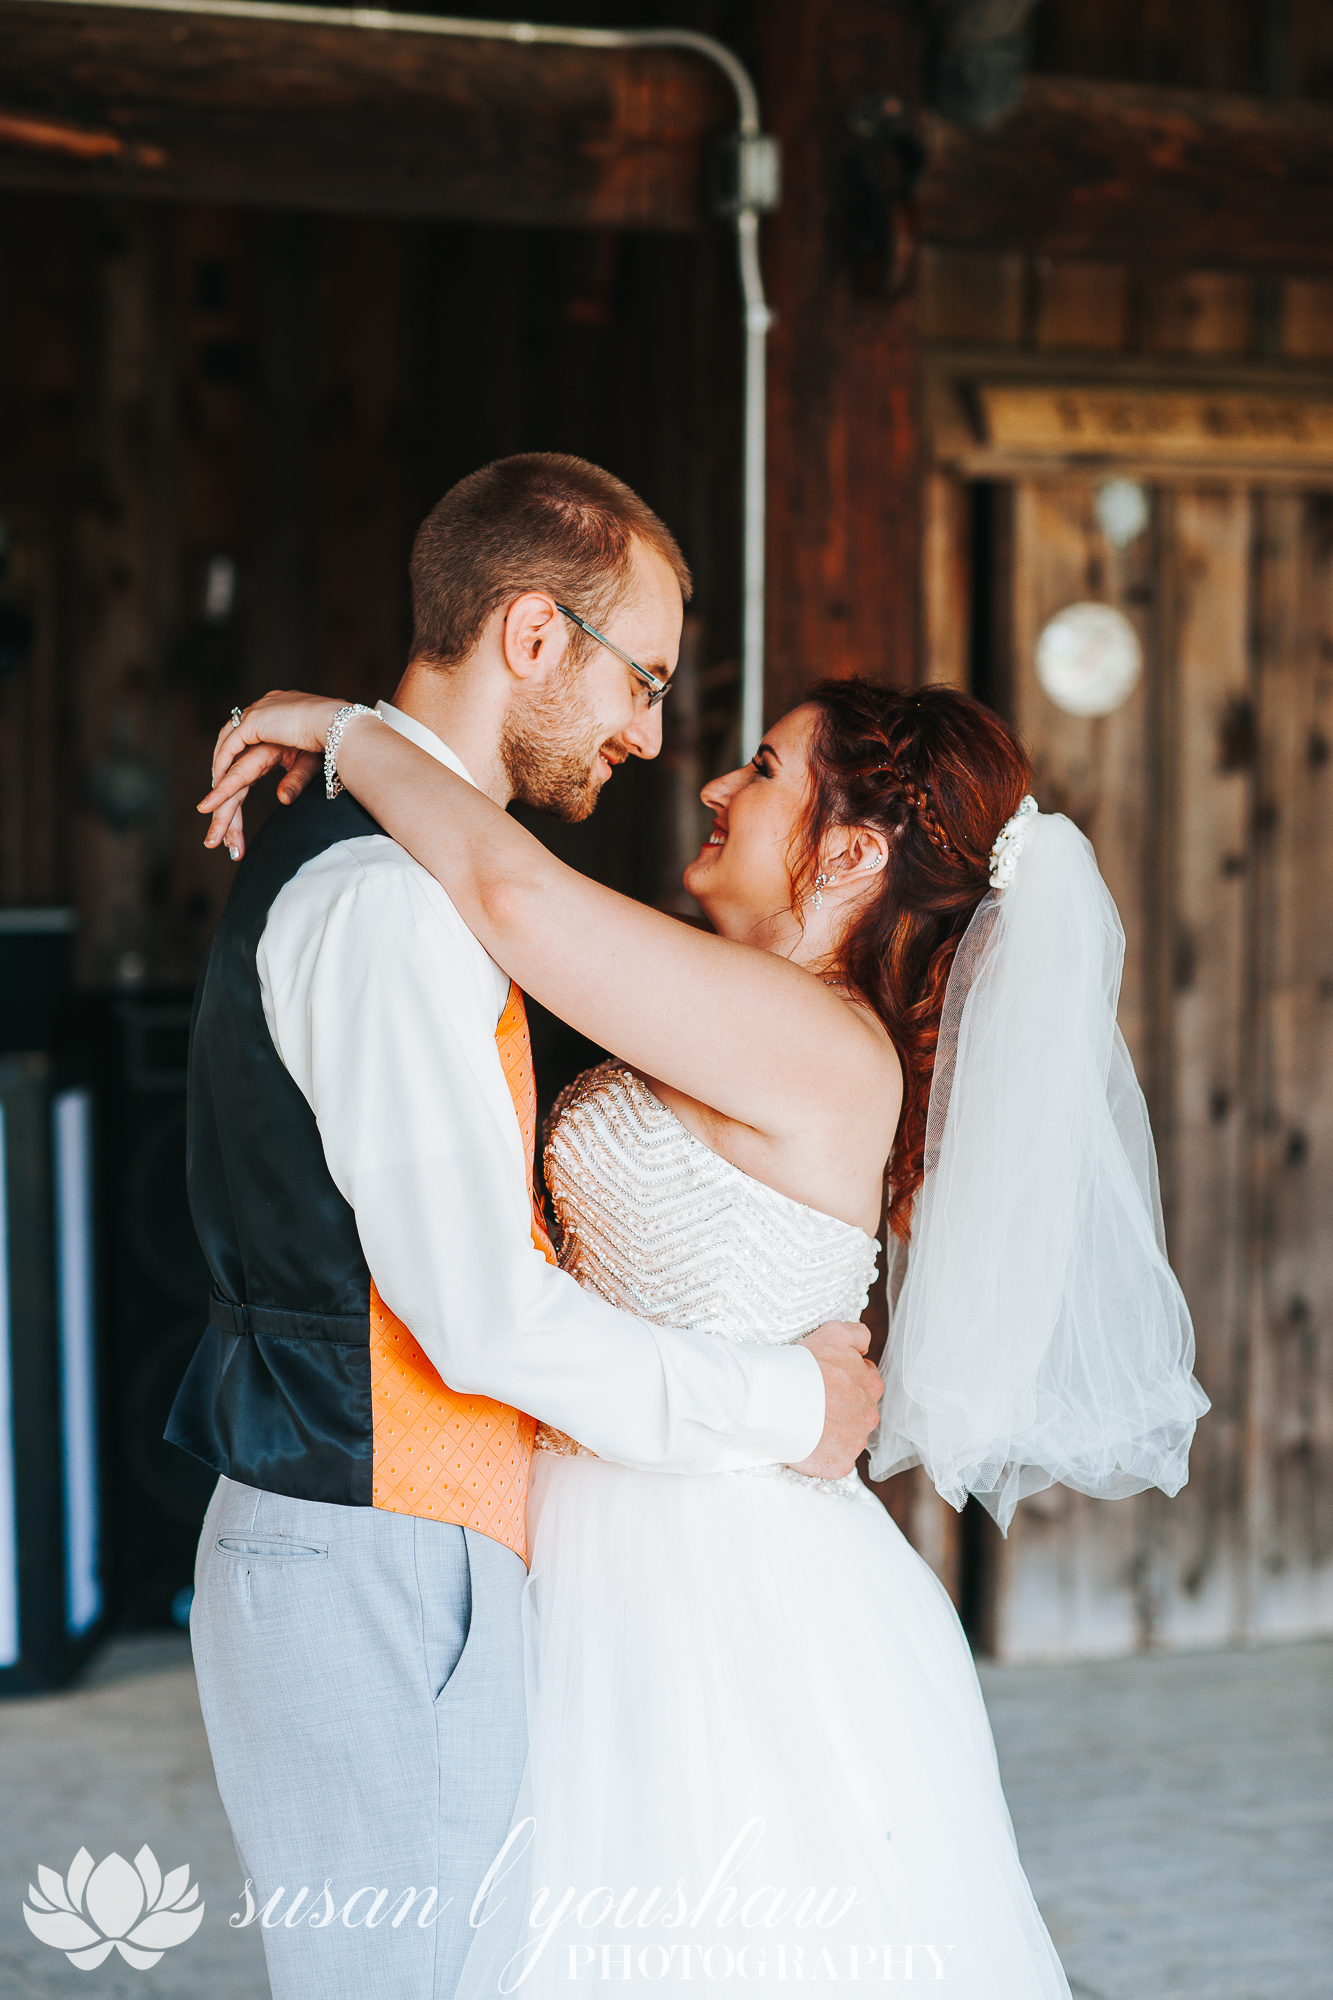 BLOG Kelly and DJ Roberts 08-25-2018 SLY Photography LLC-124.jpg